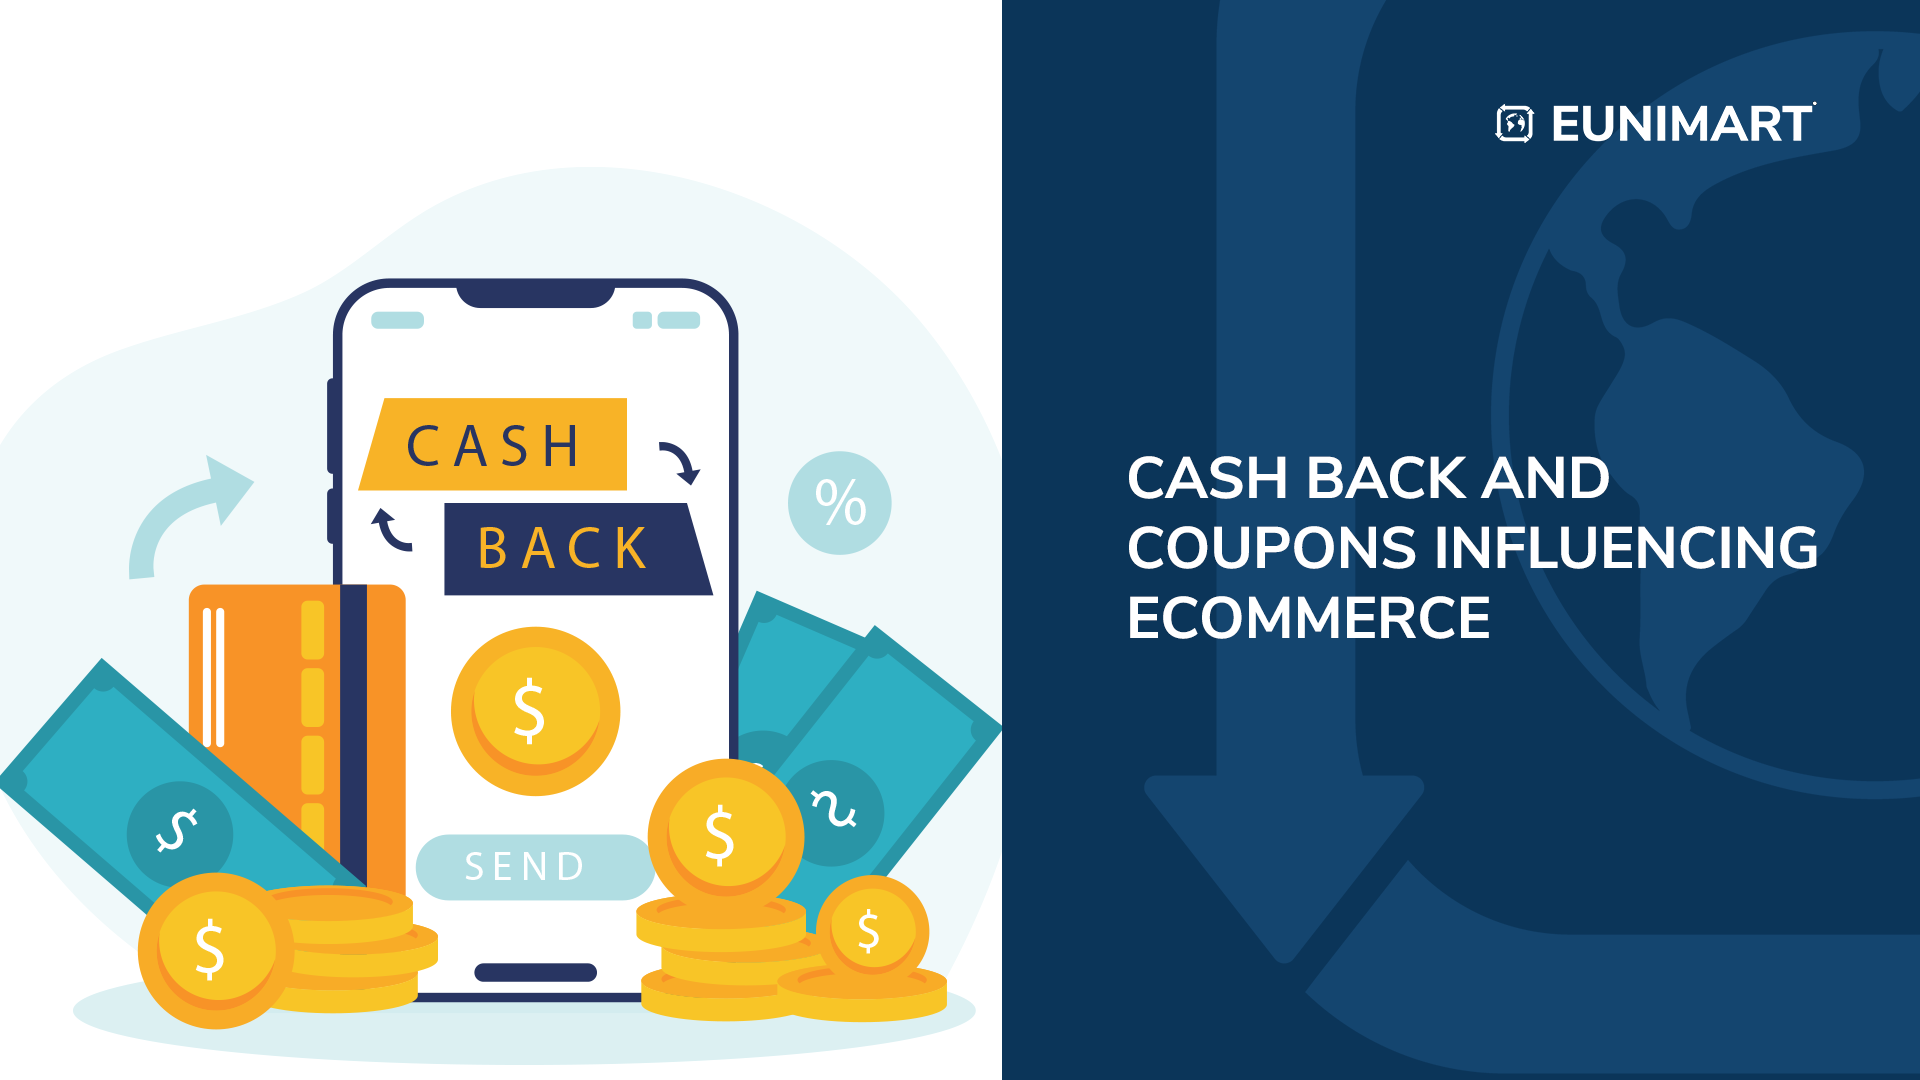 Cash back and Coupons Influencing Ecommerce